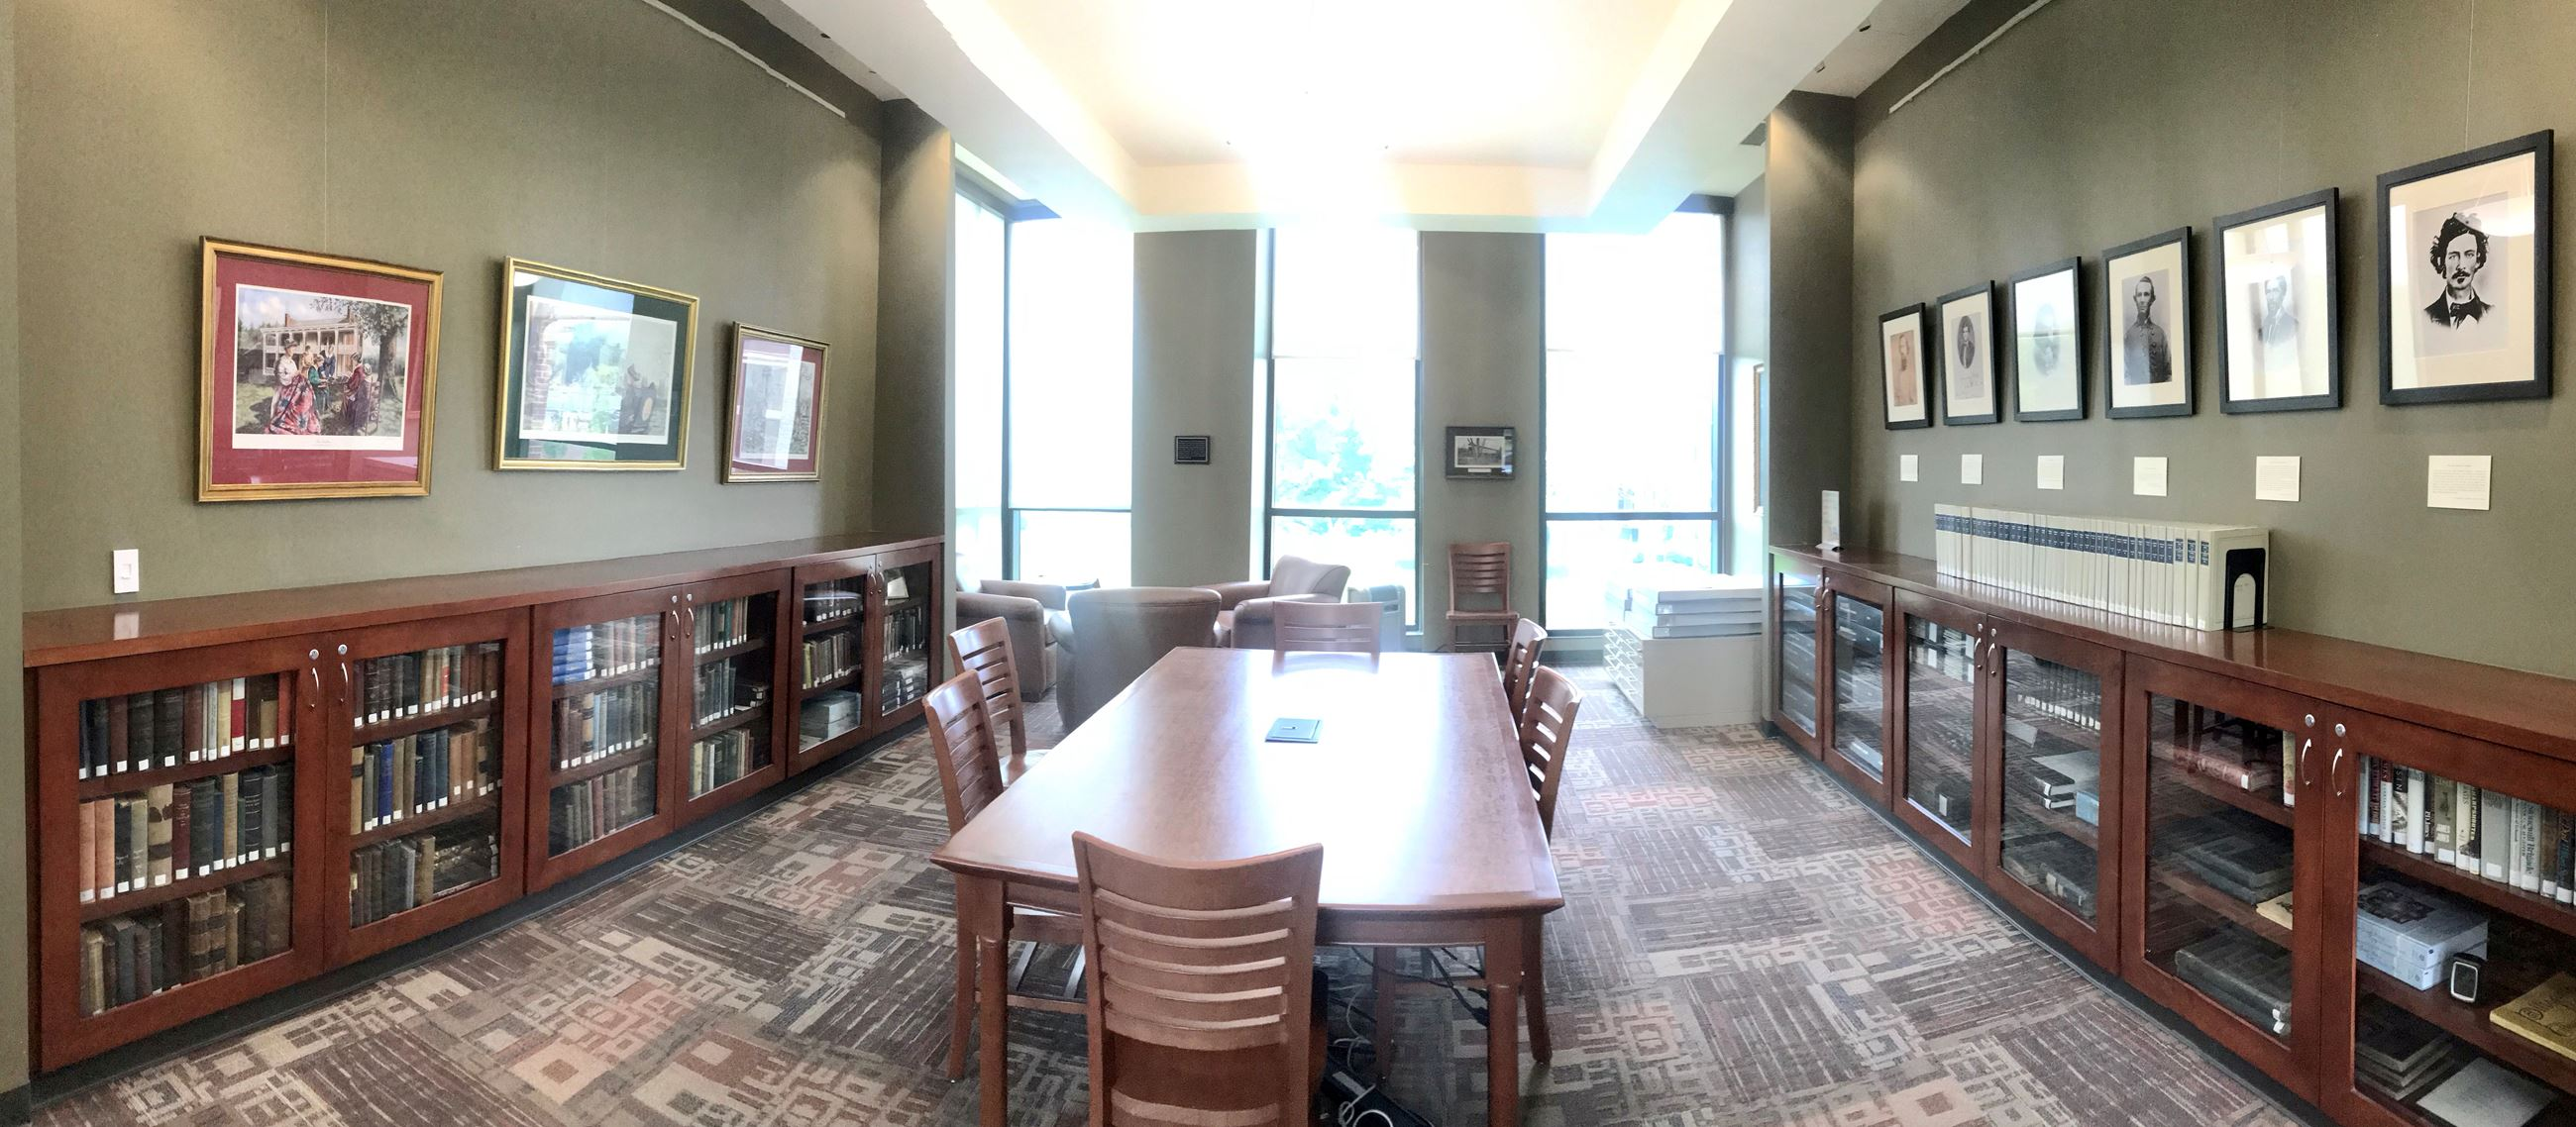 The Williamson Room, located in the Special Collections Department